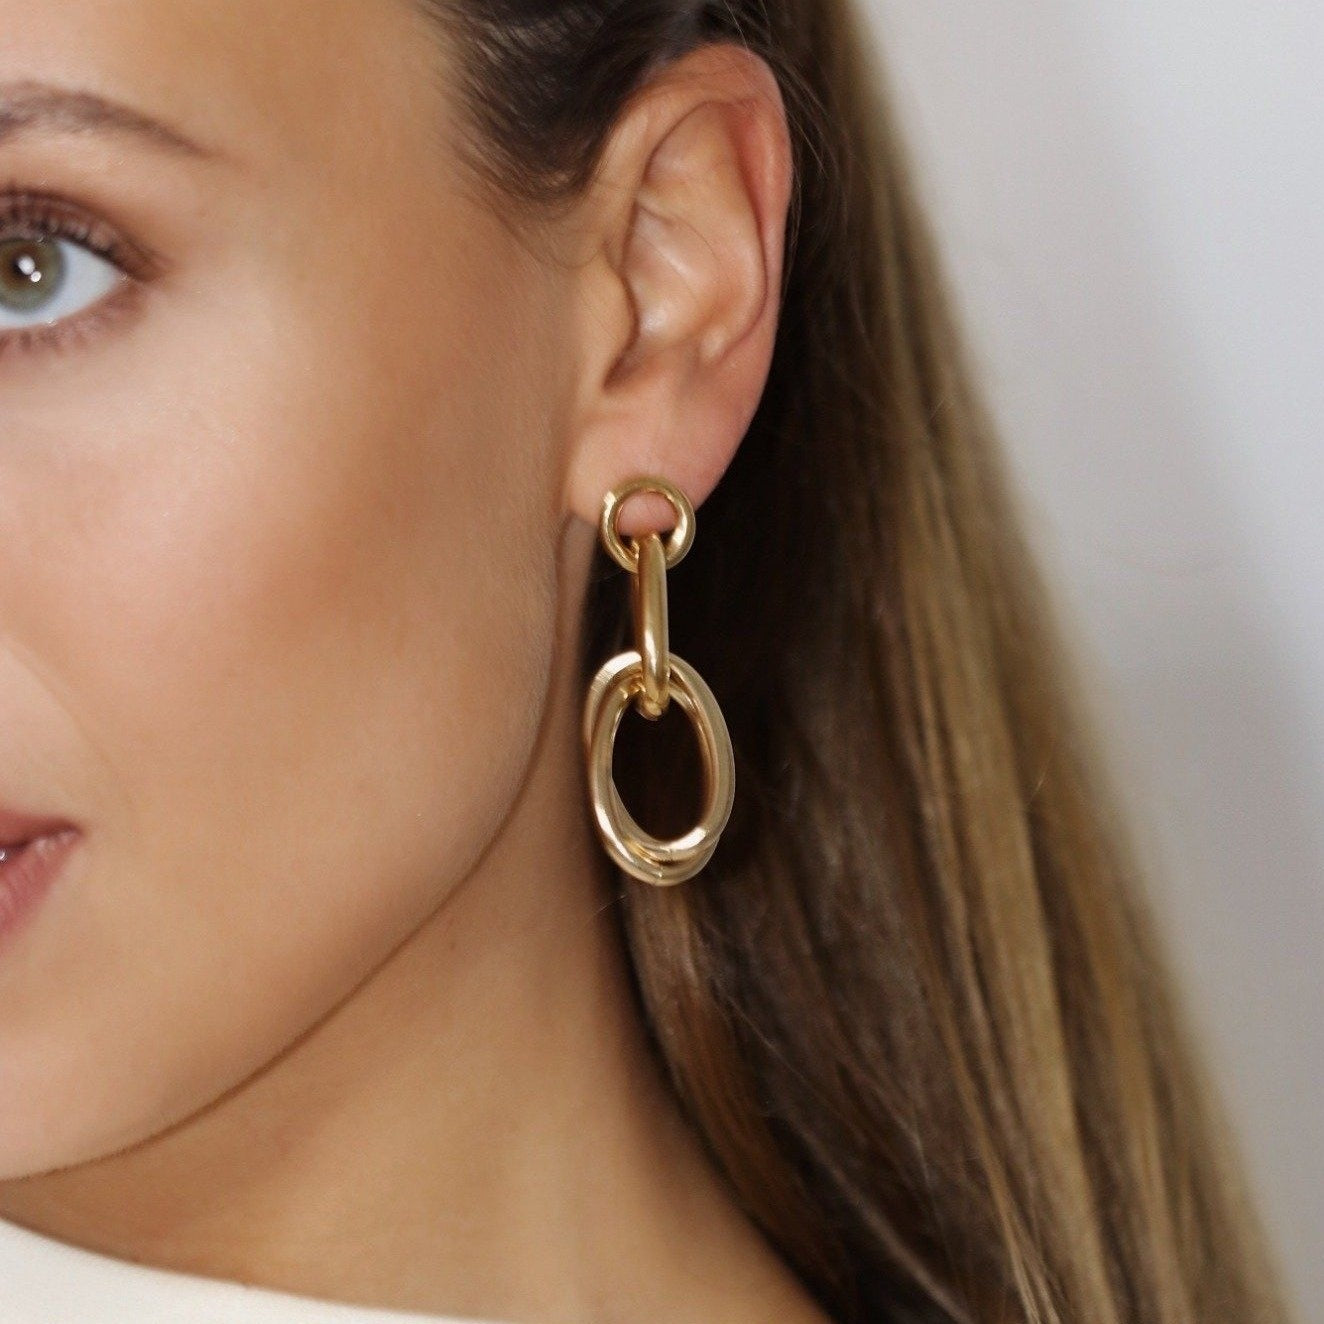 Evi gold chain earrings